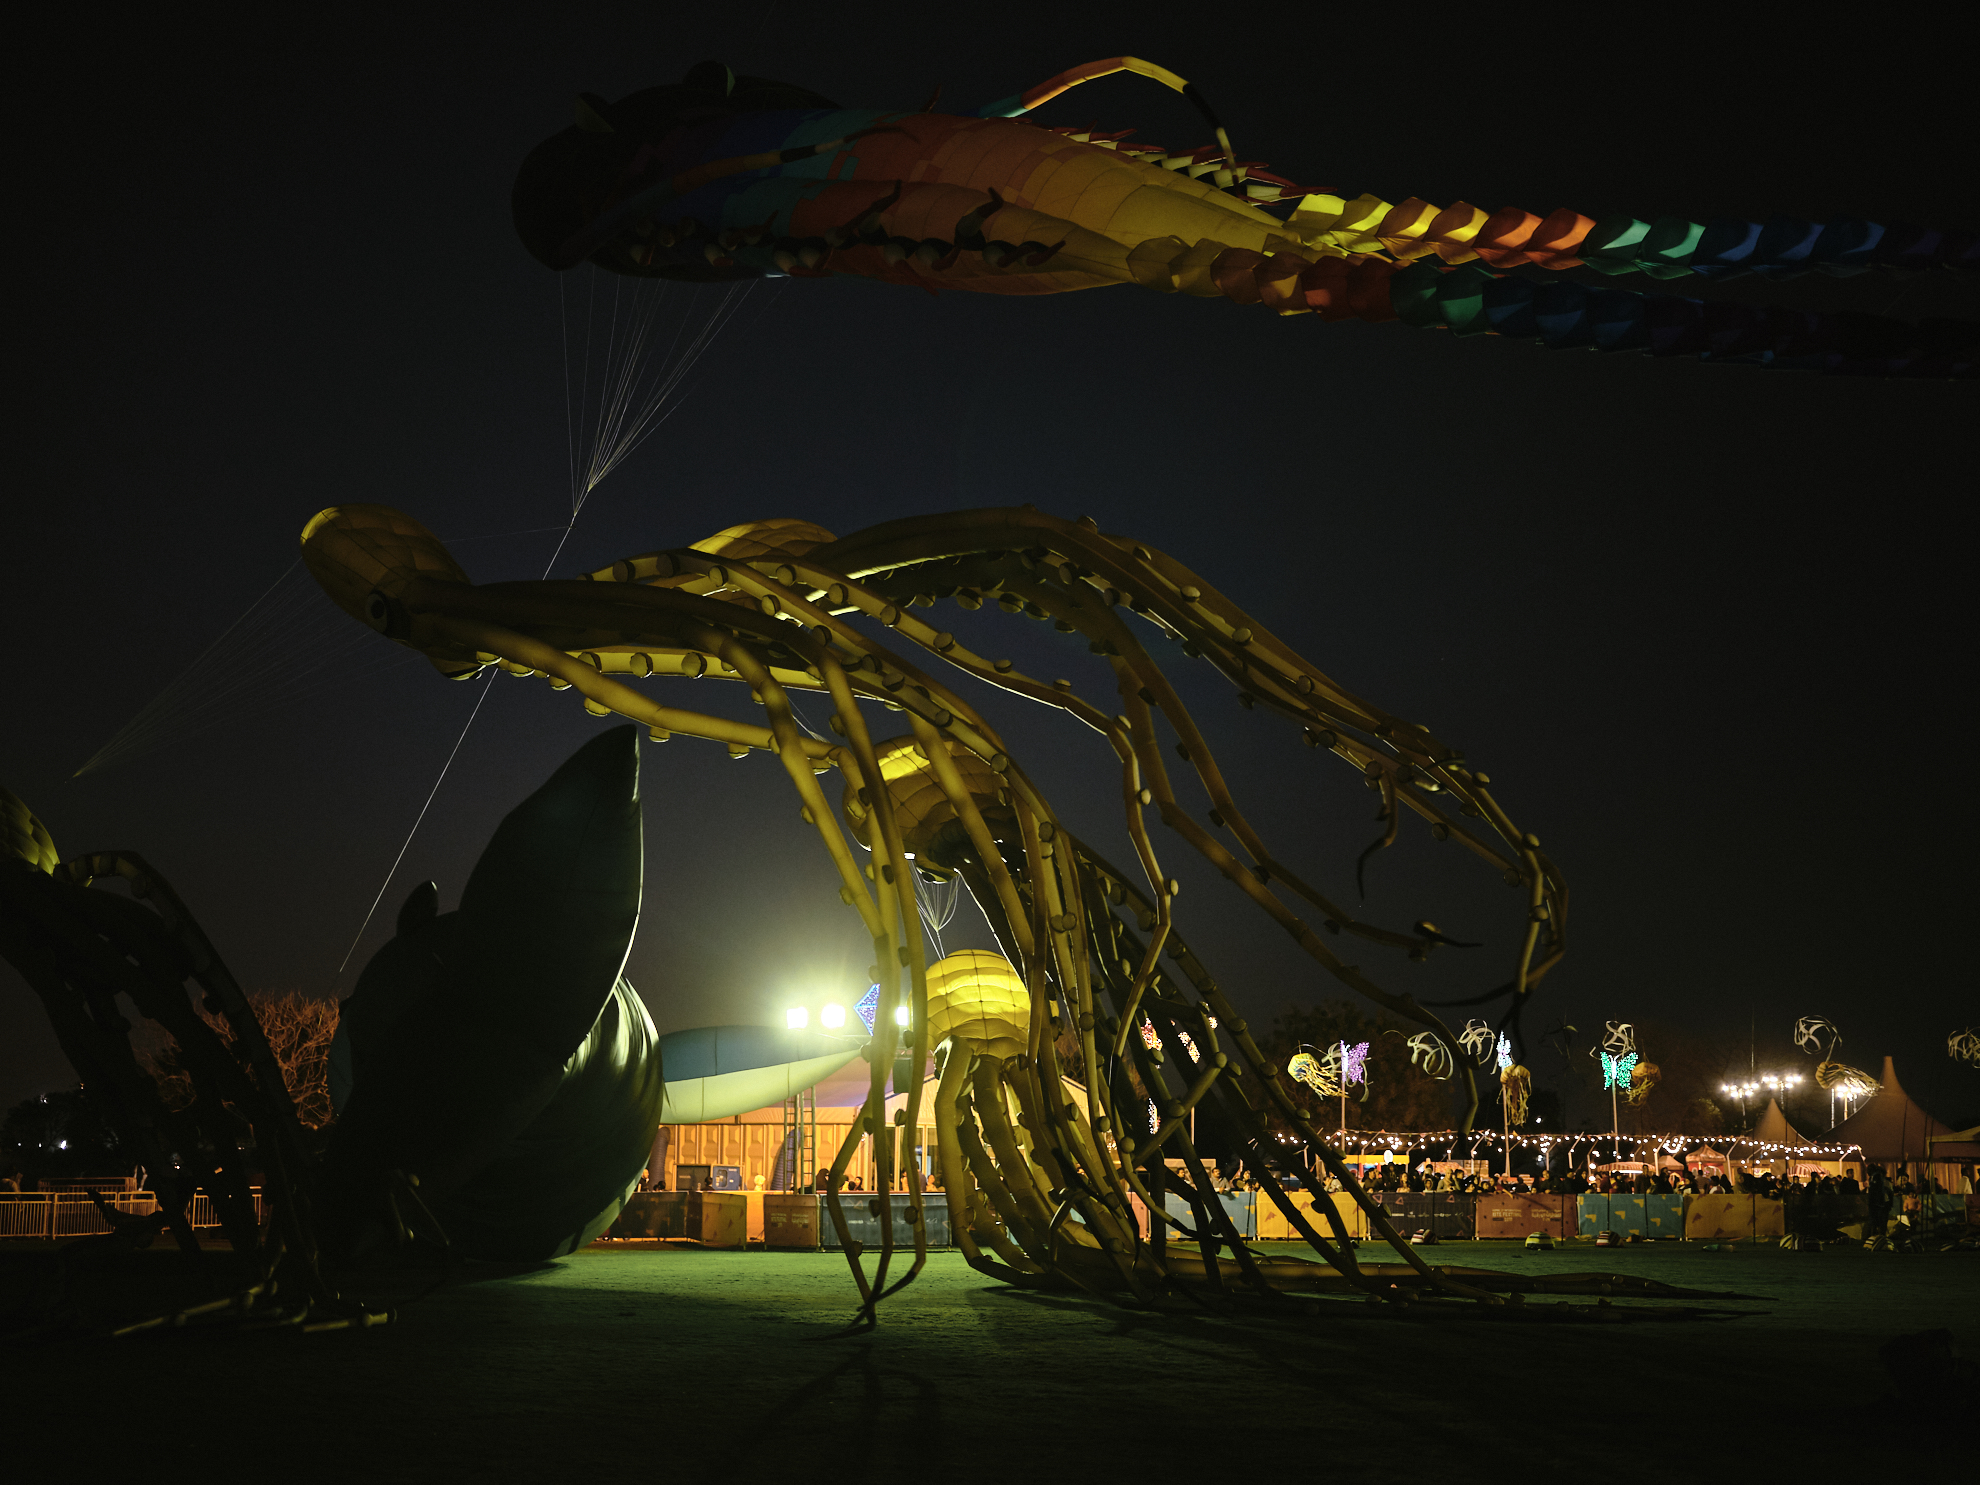 aspire kite festival photography night flying